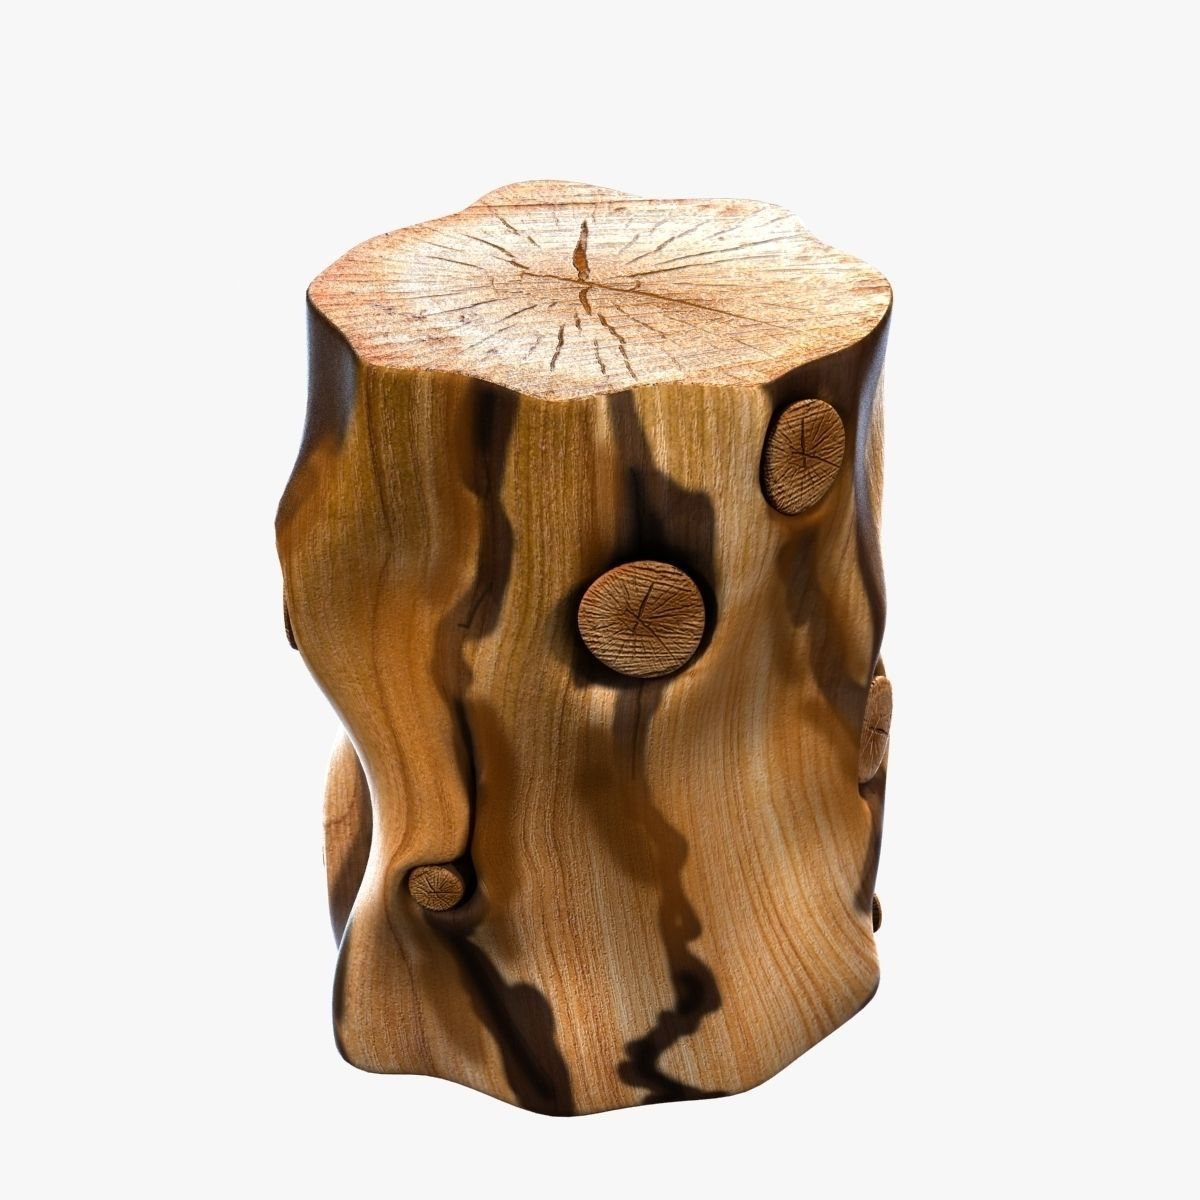 west elm natural tree stump side table model cgtrader max obj fbx accent mtl unitypackage prefab ikea white storage unit narrow marble coffee antique oval and chairs oversized